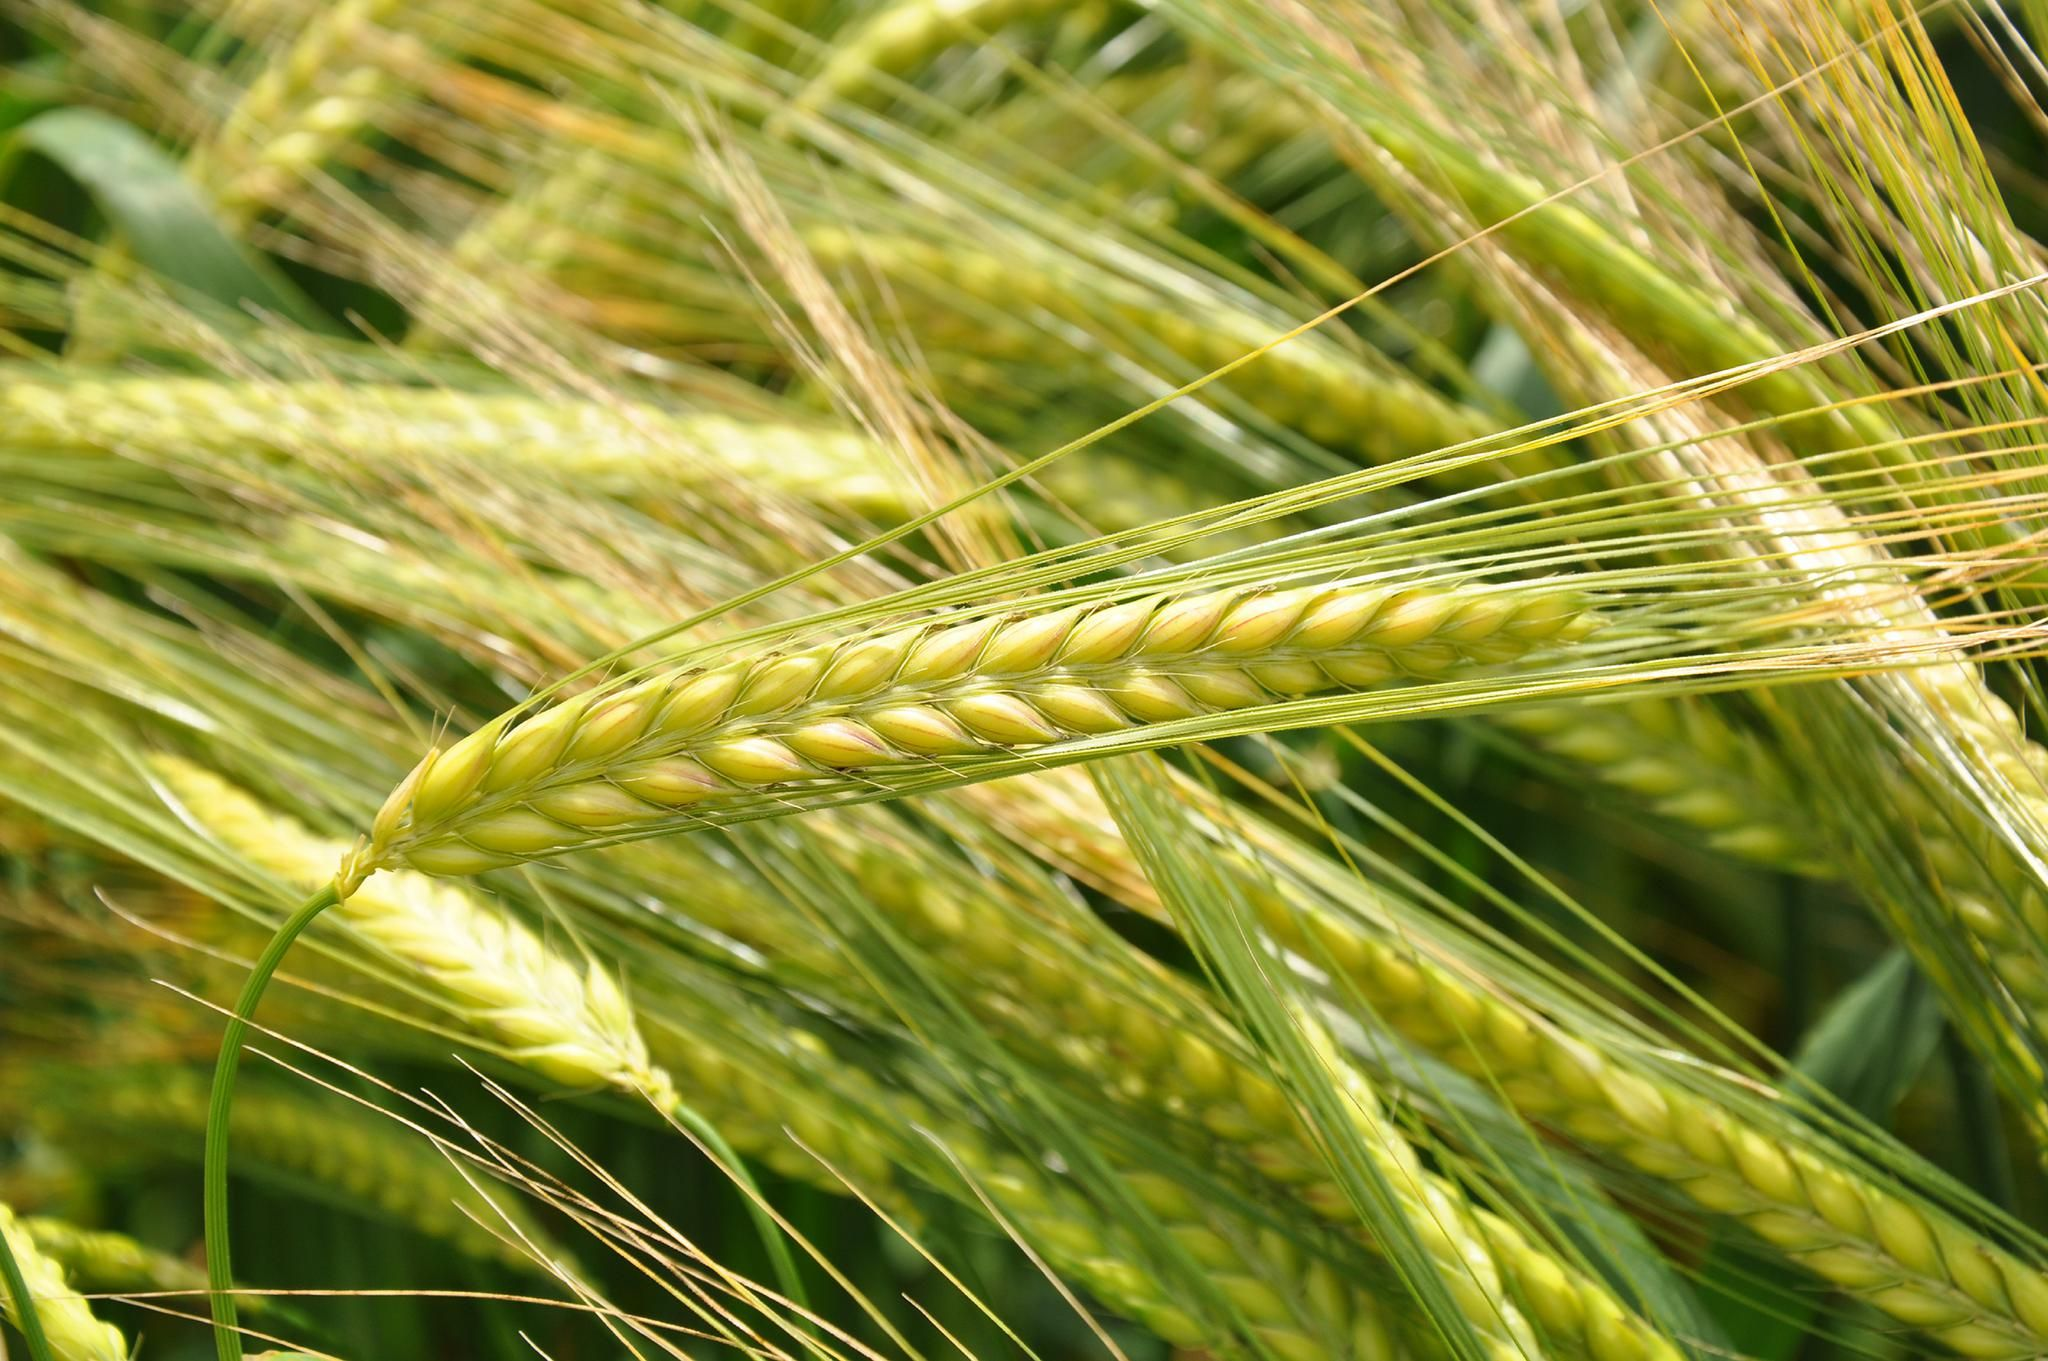 SEVEN NEW CEREAL VARIETIES TO FEATURE IN SYNGENTA PLOTS AT CEREALS 2019